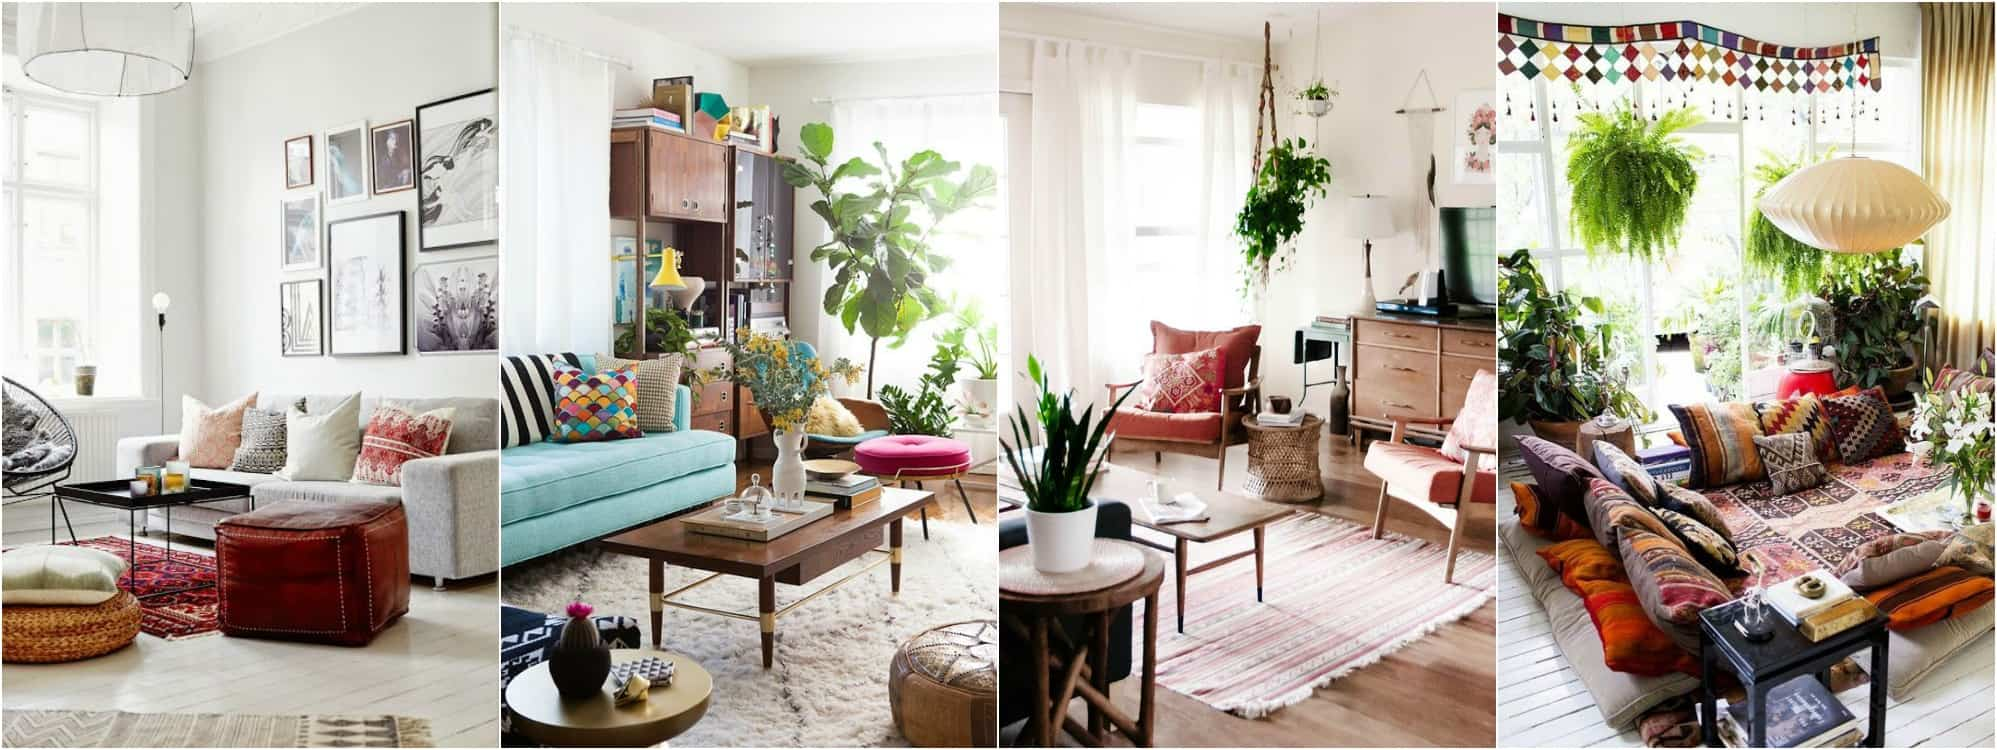 Boho Chic Living Room Plans One Room Challenge Place